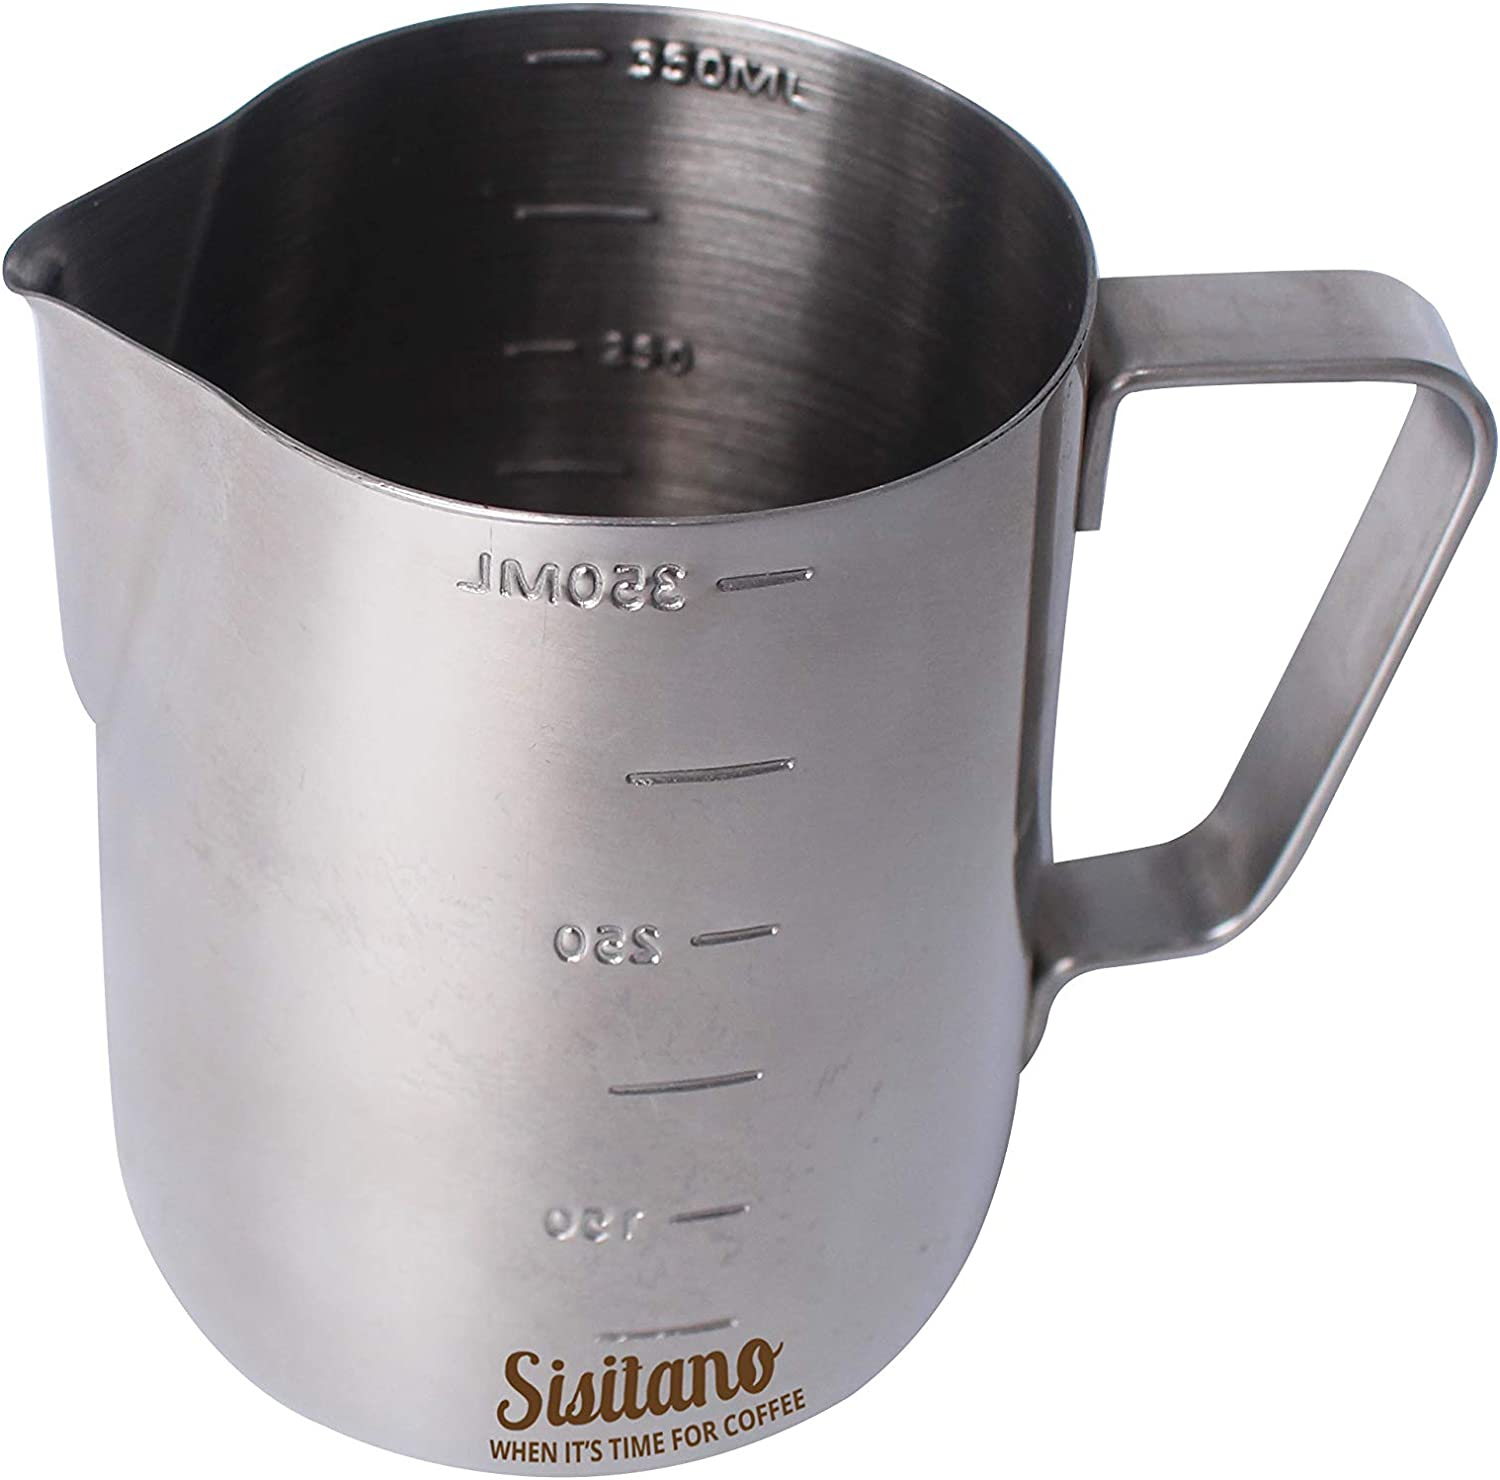 Sisitano Stainless Steel Milk Frothing Pitcher - Espresso Milk Steaming Pitcher 12oz 350ml. Milk Frother Pitcher With Drip Control For Perfect Coffee-Art Every Time. 71gqjE9Y-vL